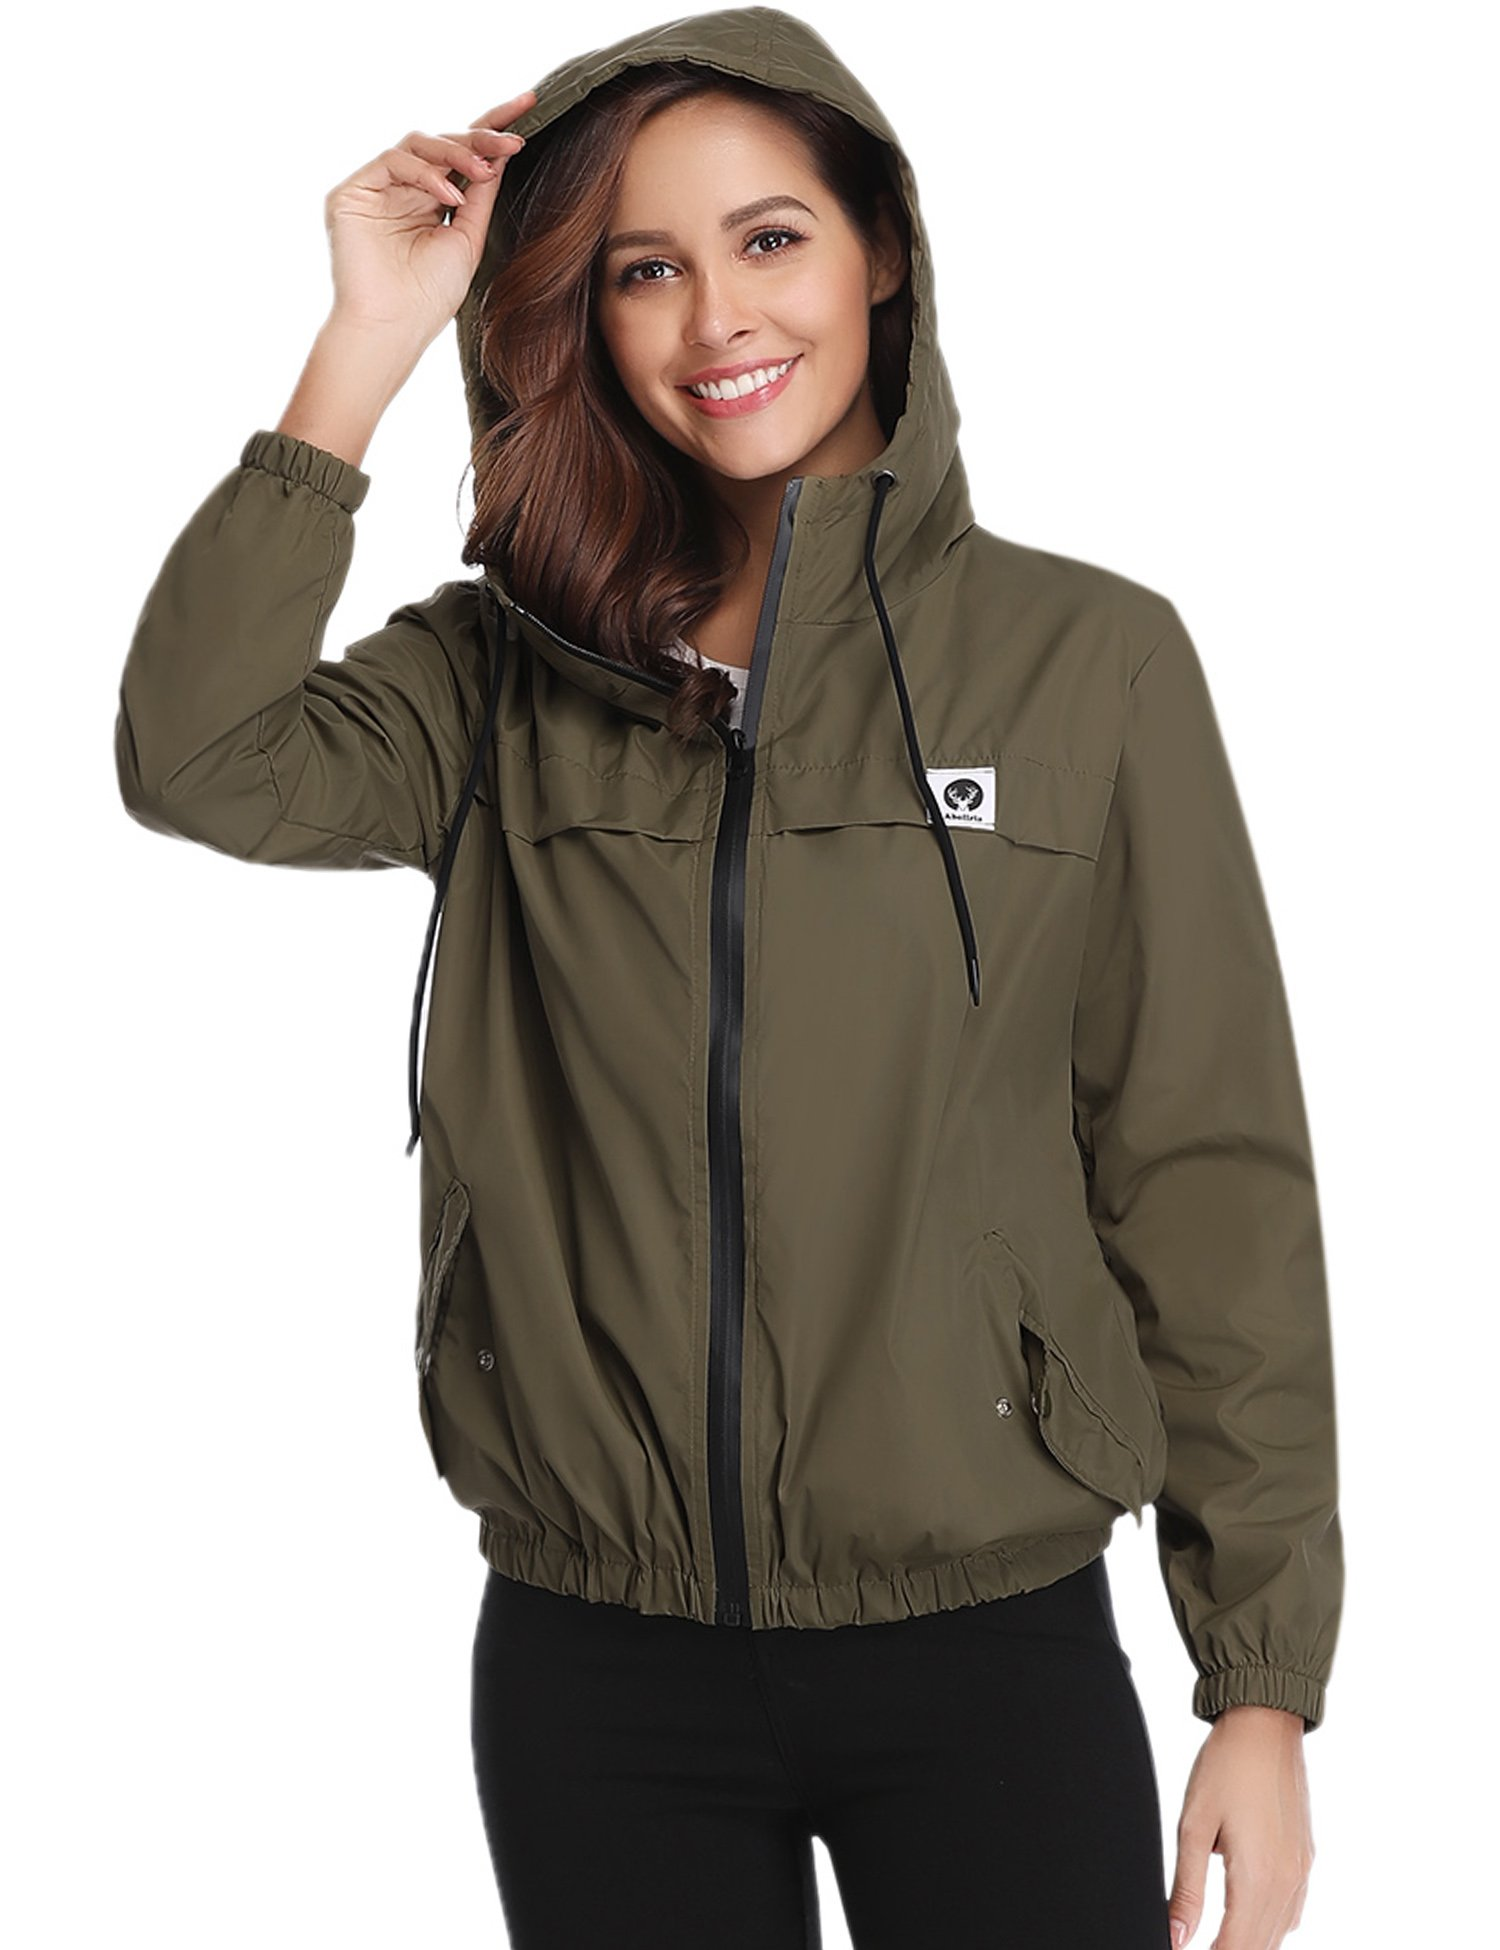 Abollria Raincoats Waterproof Lightweight Rain Jacket Active Outdoor Hooded Women's Trench Coats